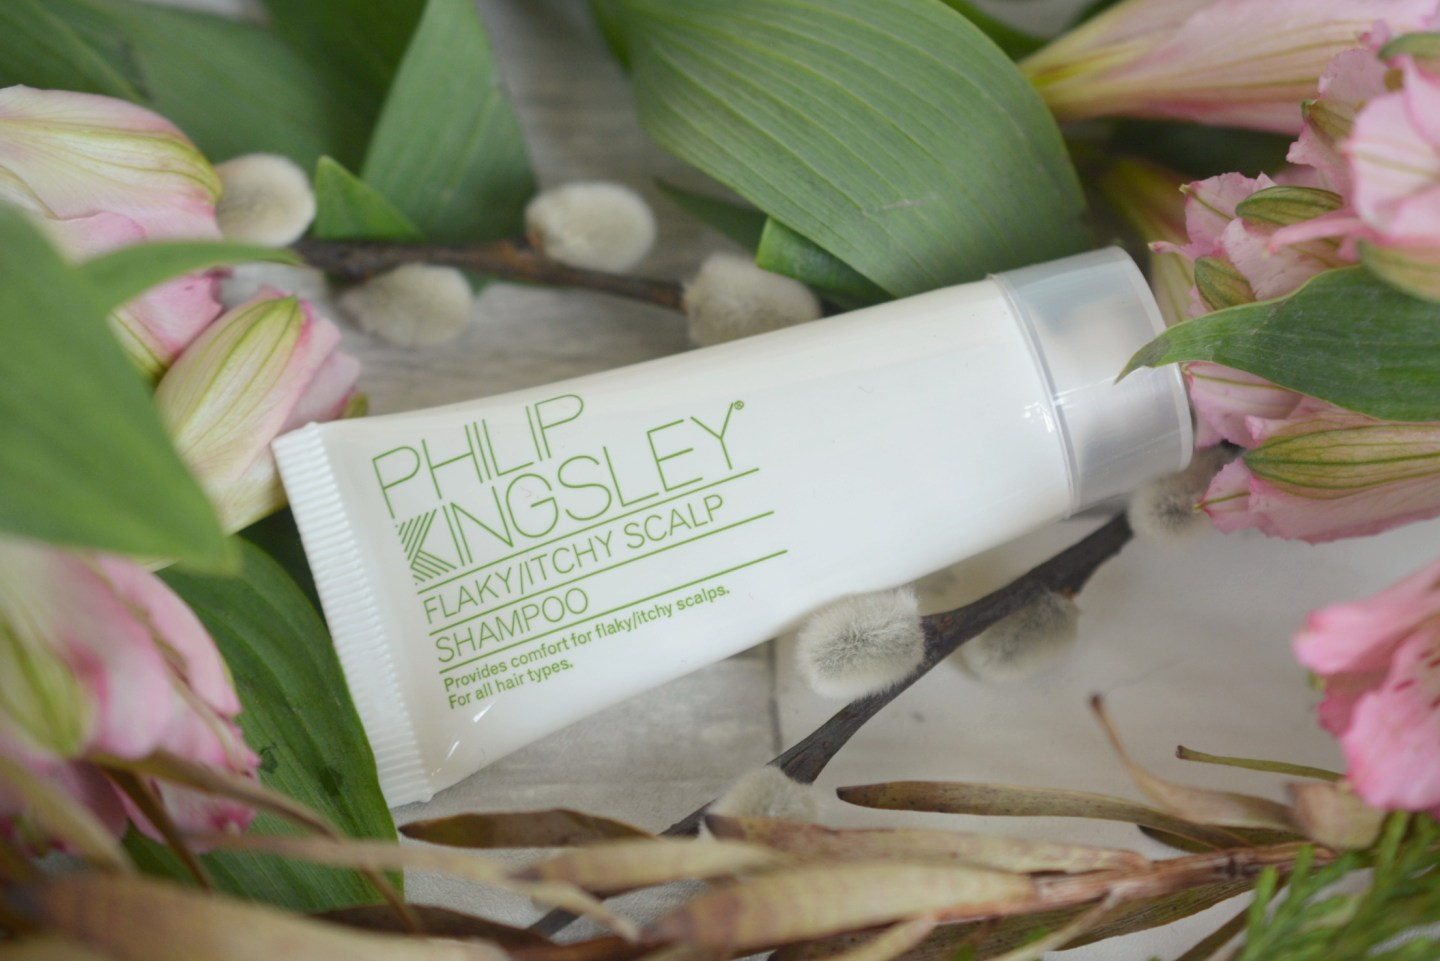 January Birchbox Review 2019 | Philip Kingsley Shampoo | Vintage Frills